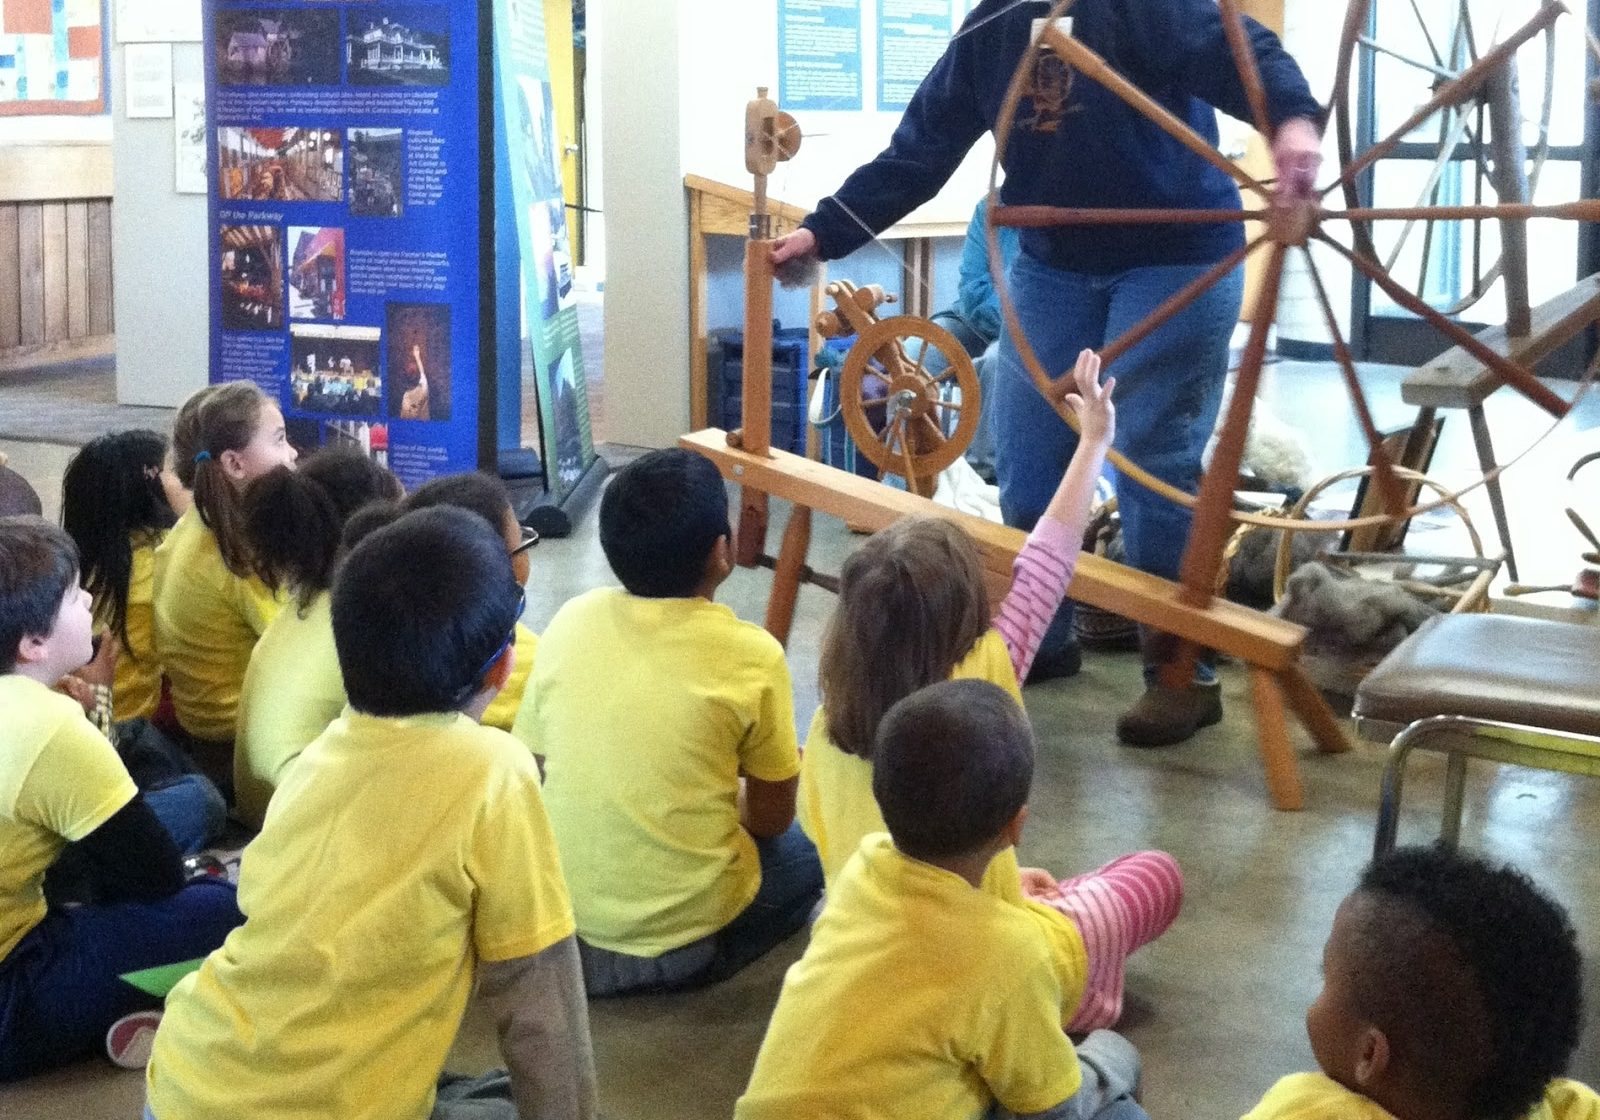 Mary Nichols showed the kids how she spins on a spinning wheel.